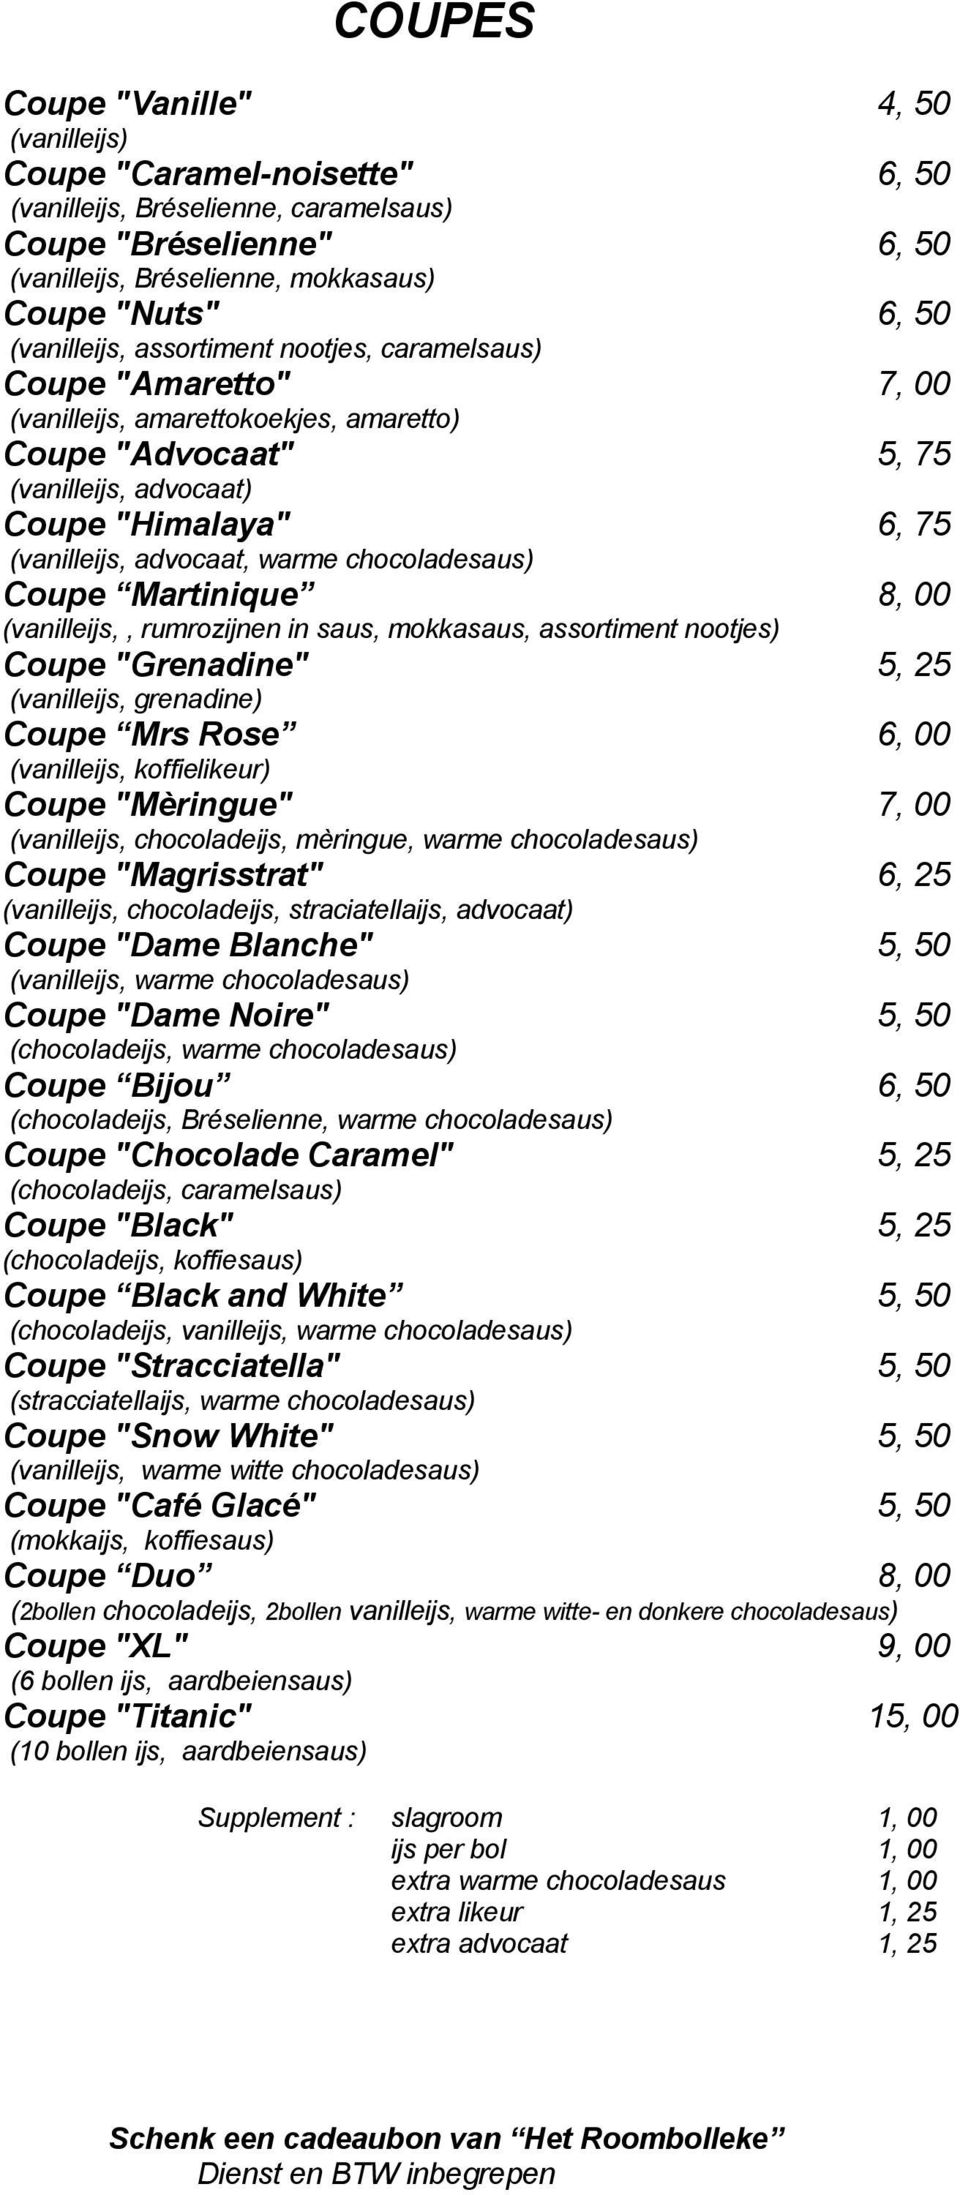 "advocaat, warme chocoladesaus) Coupe Martinique 8, 00 (vanilleijs,, rumrozijnen in saus, mokkasaus, assortiment nootjes) Coupe ""Grenadine"" 5, 25 (vanilleijs, grenadine) Coupe Mrs Rose 6, 00"